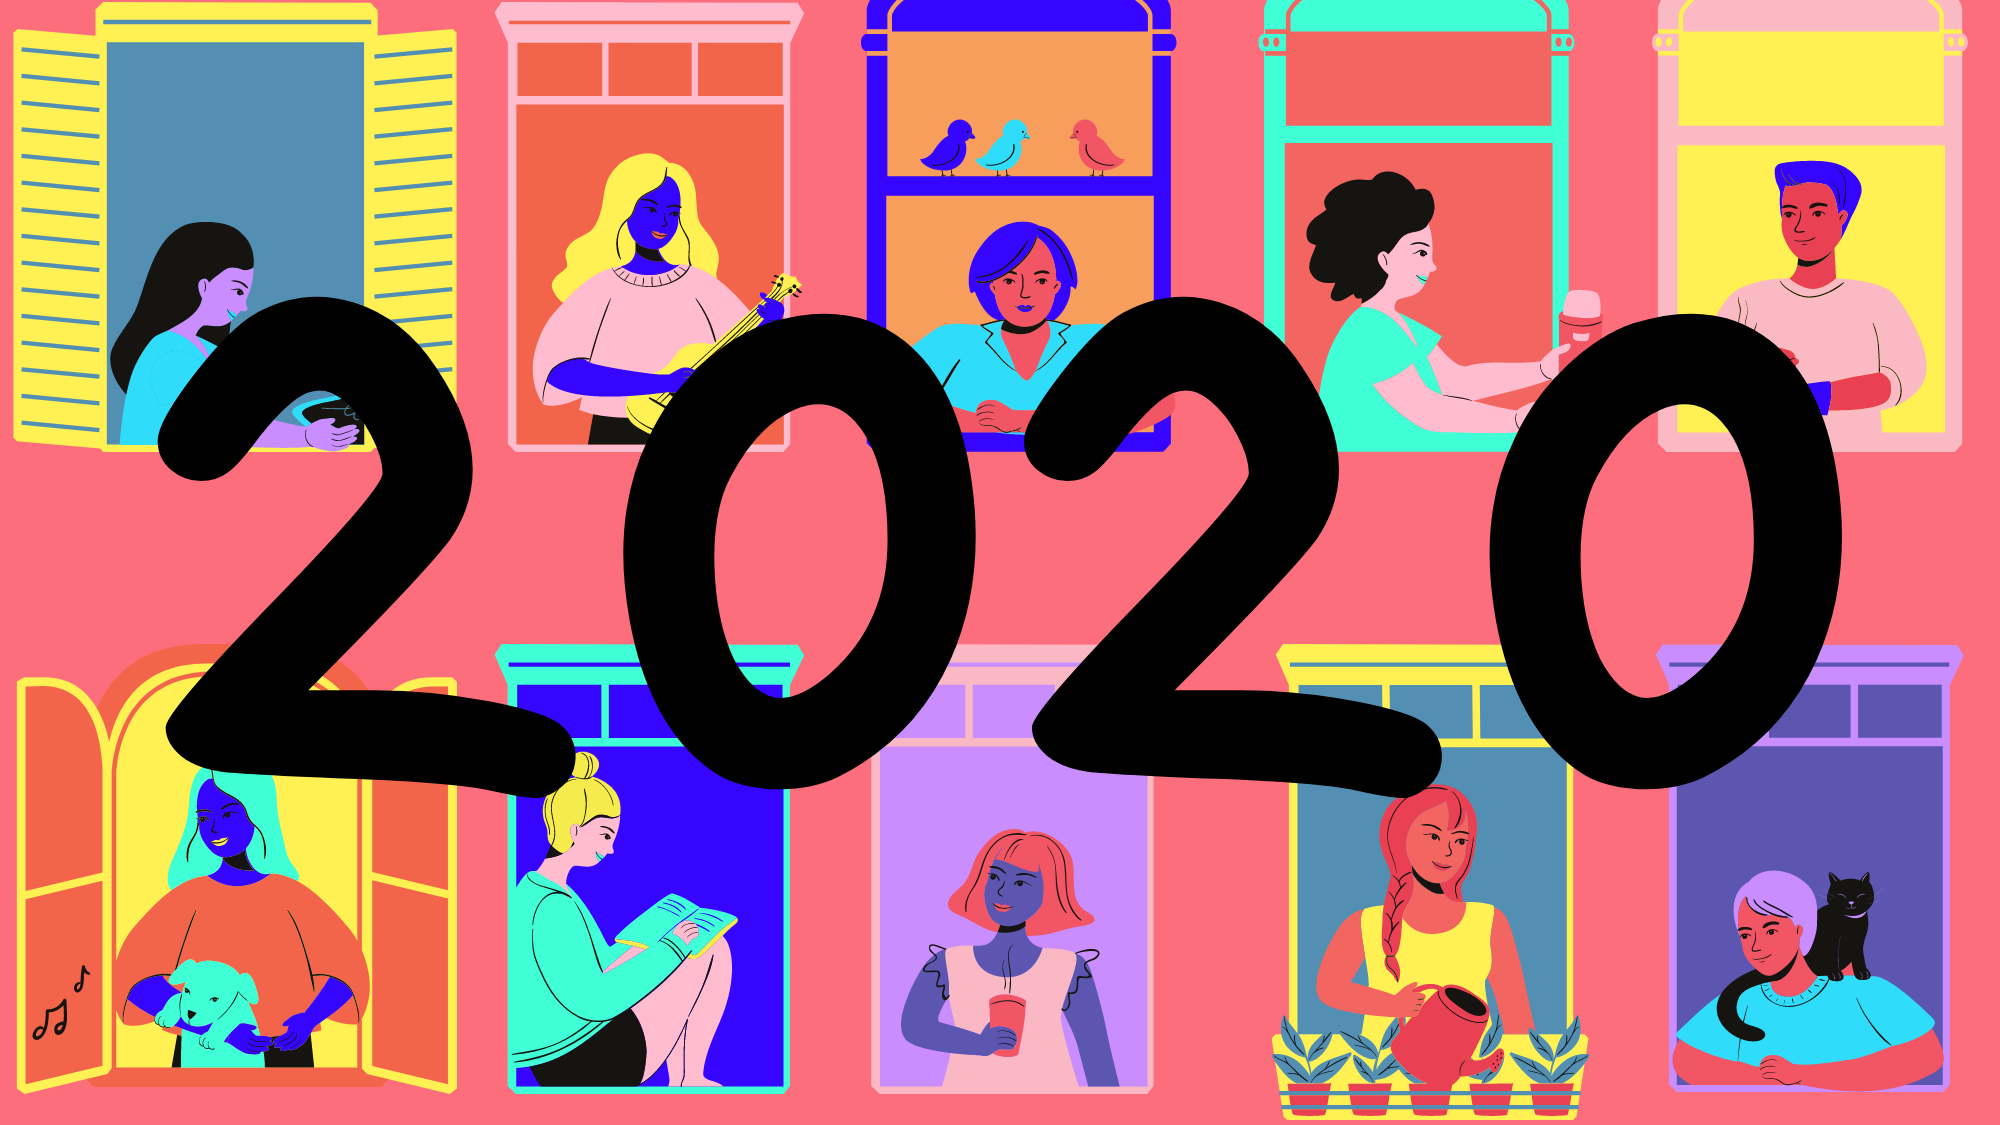 2020: The year that wasn't